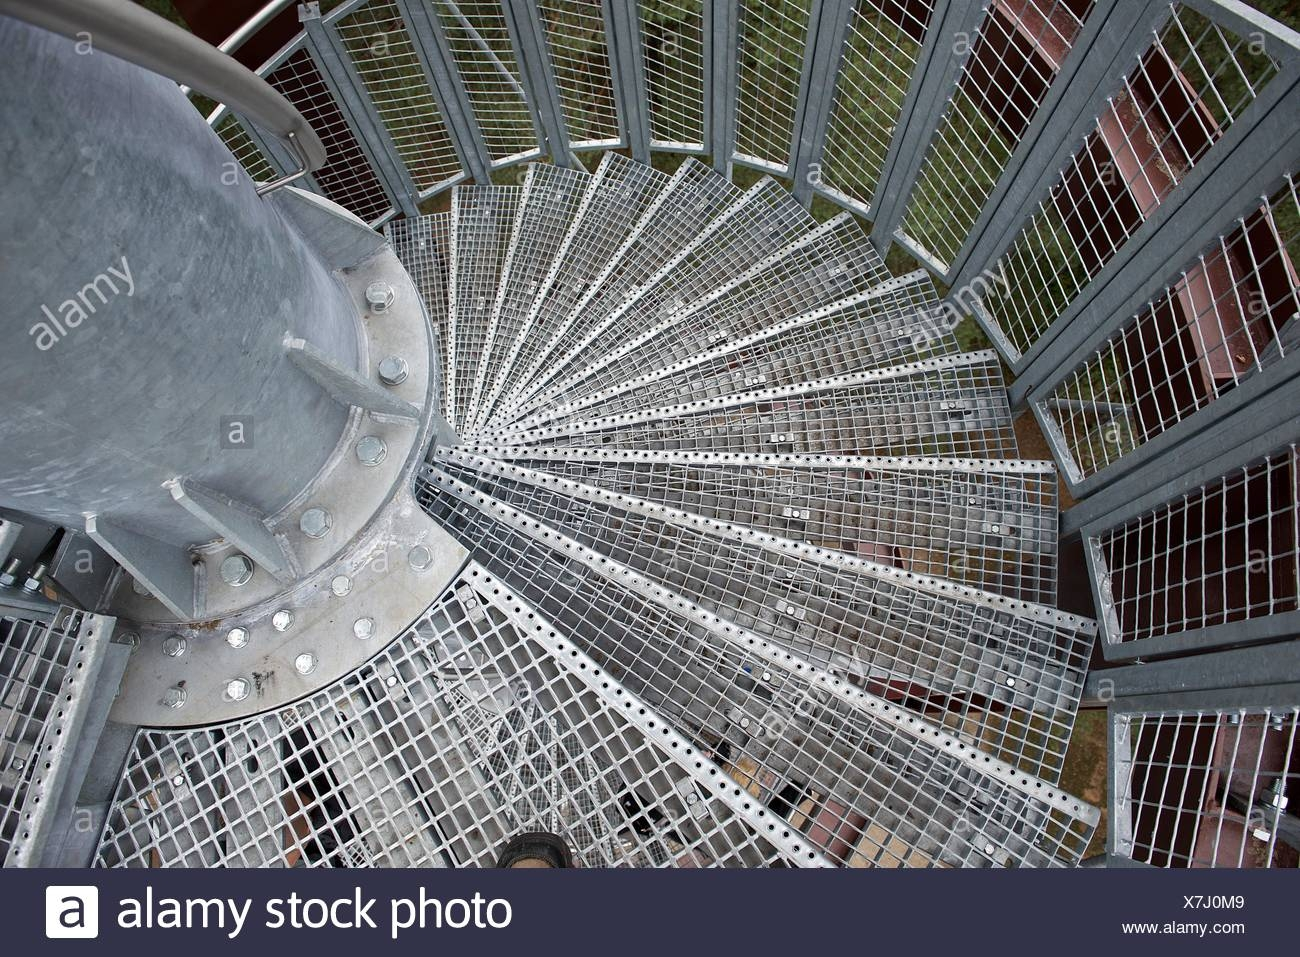 A Metal Spiral Staircase High Resolution Stock Photography And   Cast Iron Spiral Staircase For Sale   Second Hand   Used   Portable   Modular   Rod Iron